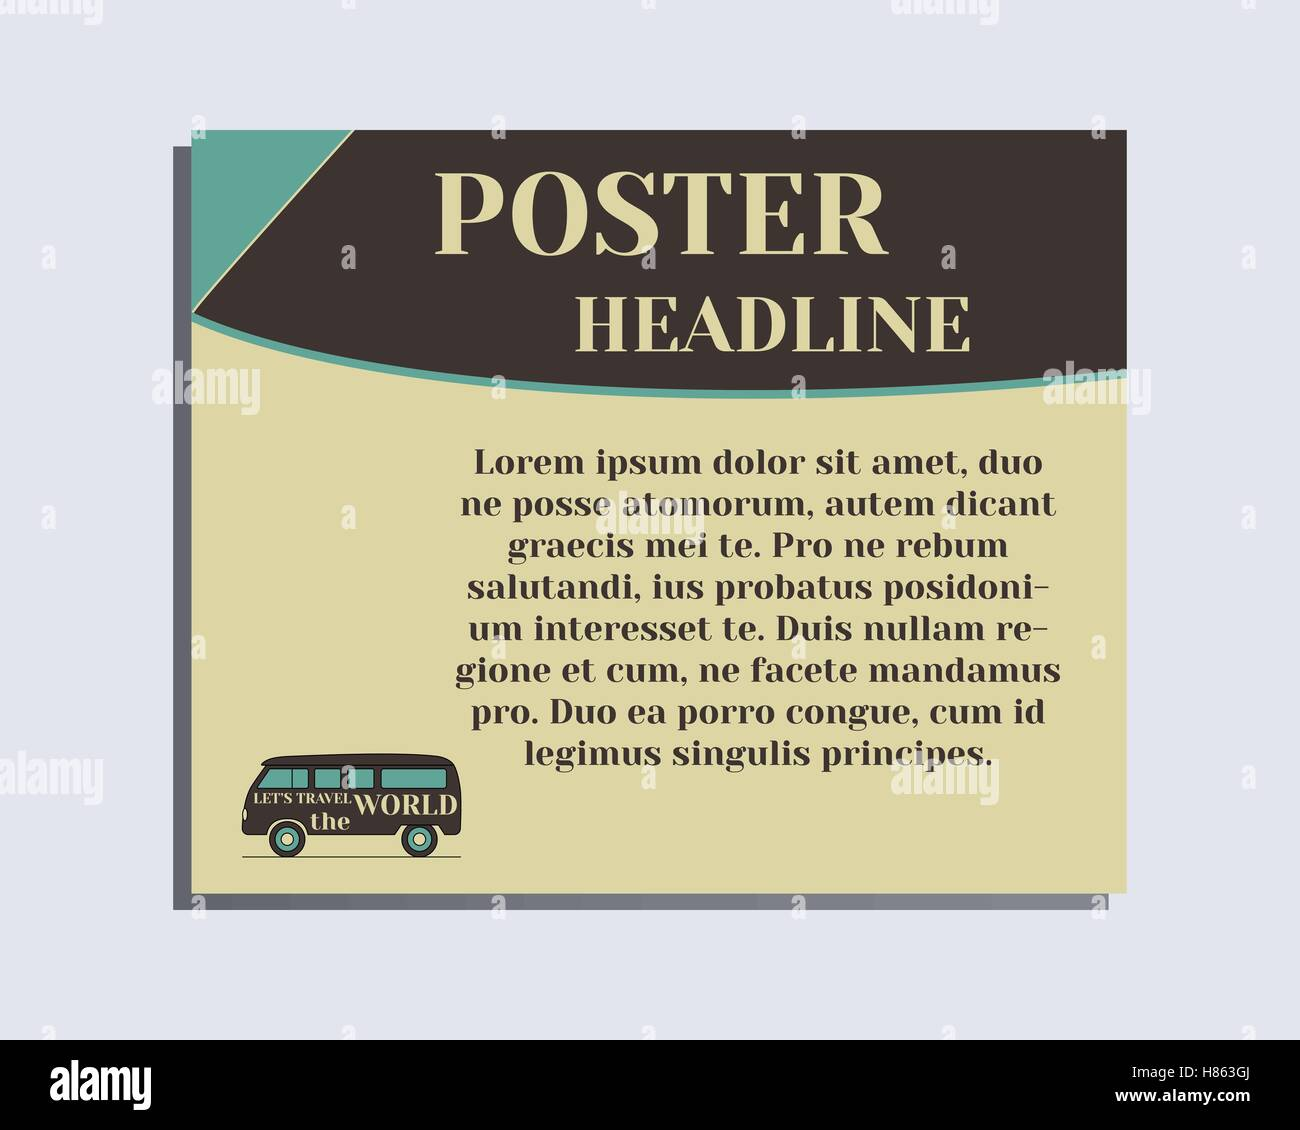 Poster design layout templates - Stock Vector Travel And Camping Poster Design Layout Template Rv Park And Campground Triangle Abstract Style Retro And Vintage Colors Design